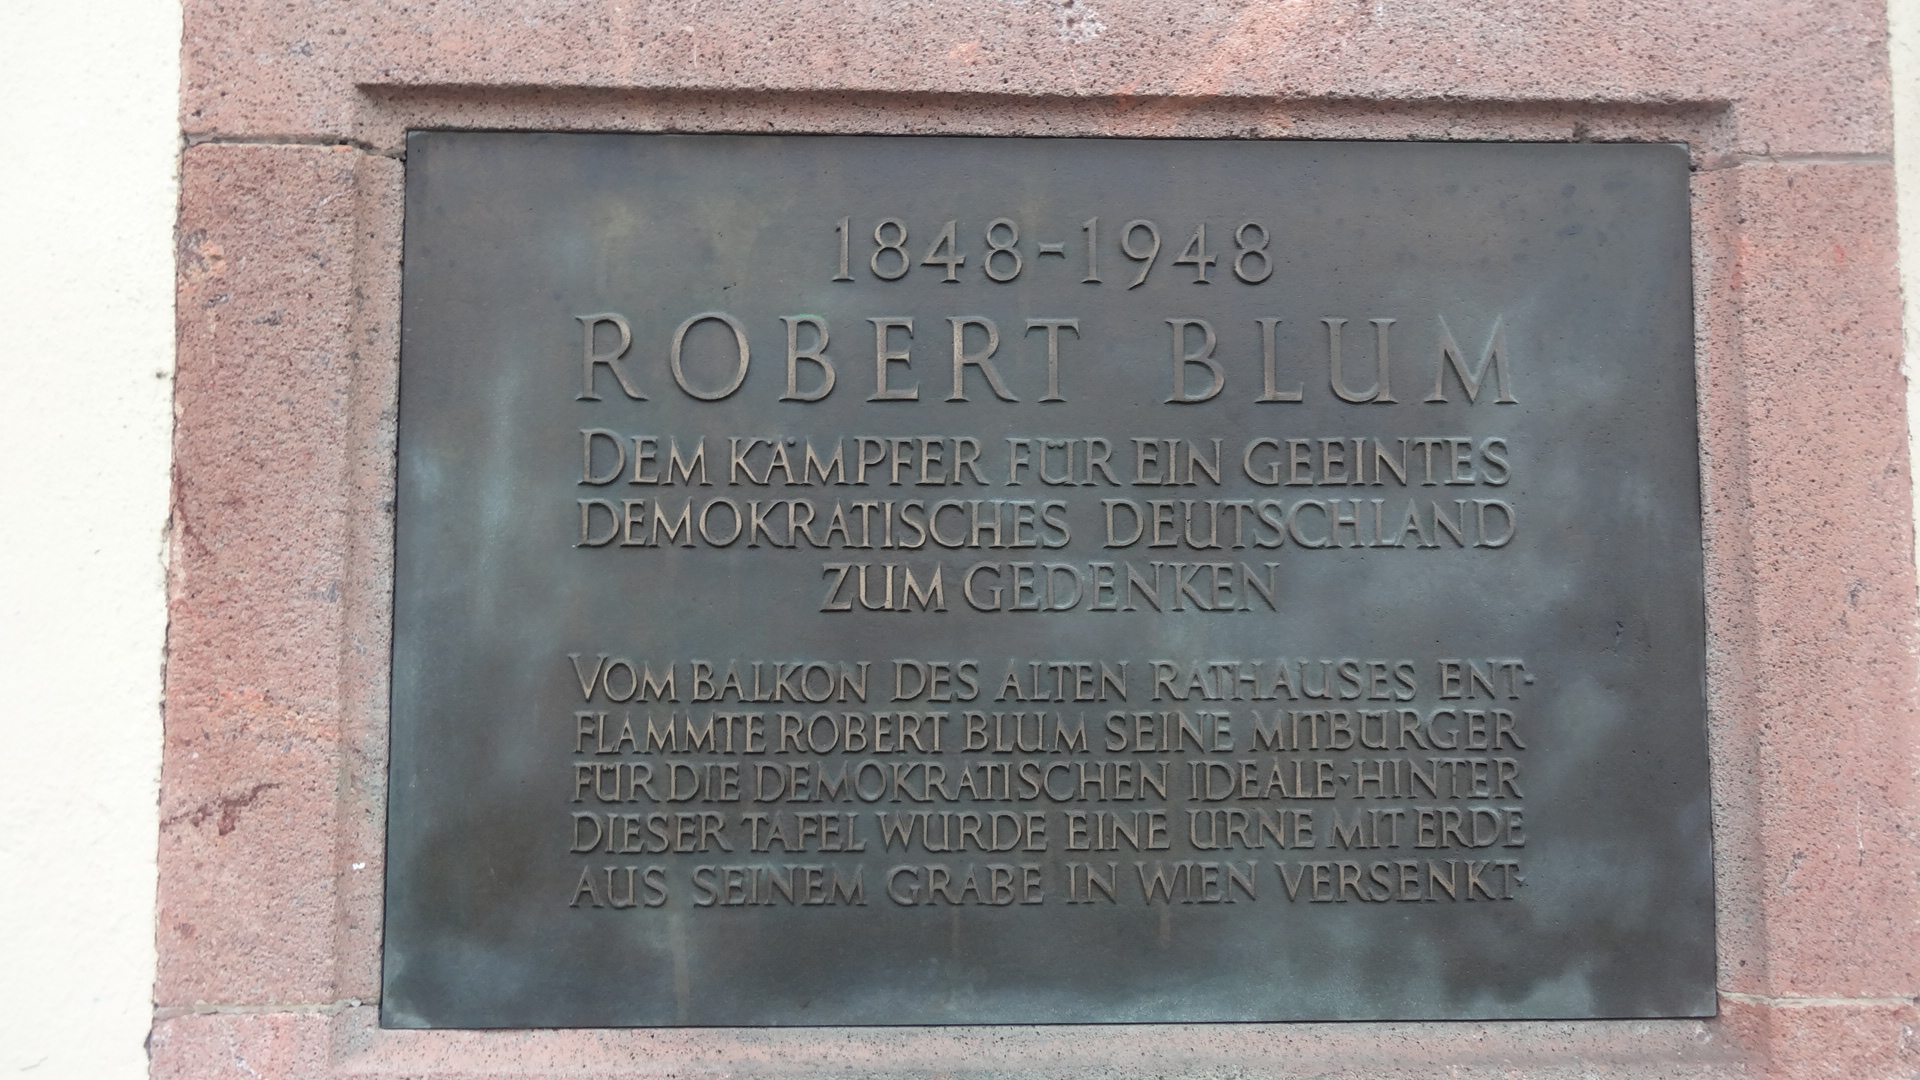 memorial stone for Robert Blum